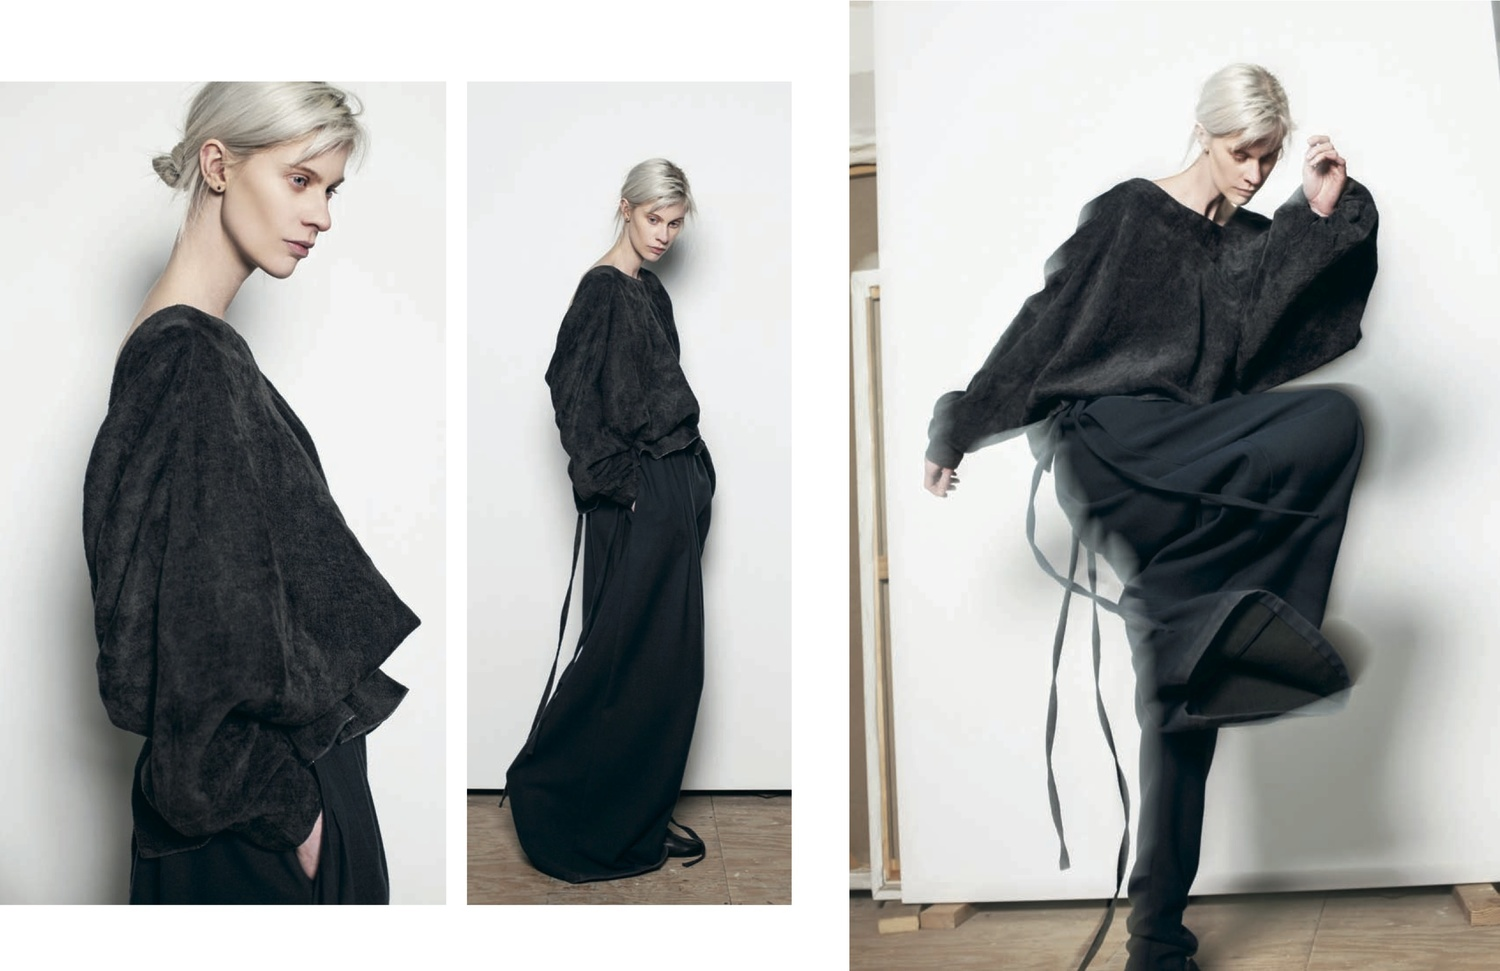 krystsina+sinkevich_lookbook+(dragged)+9